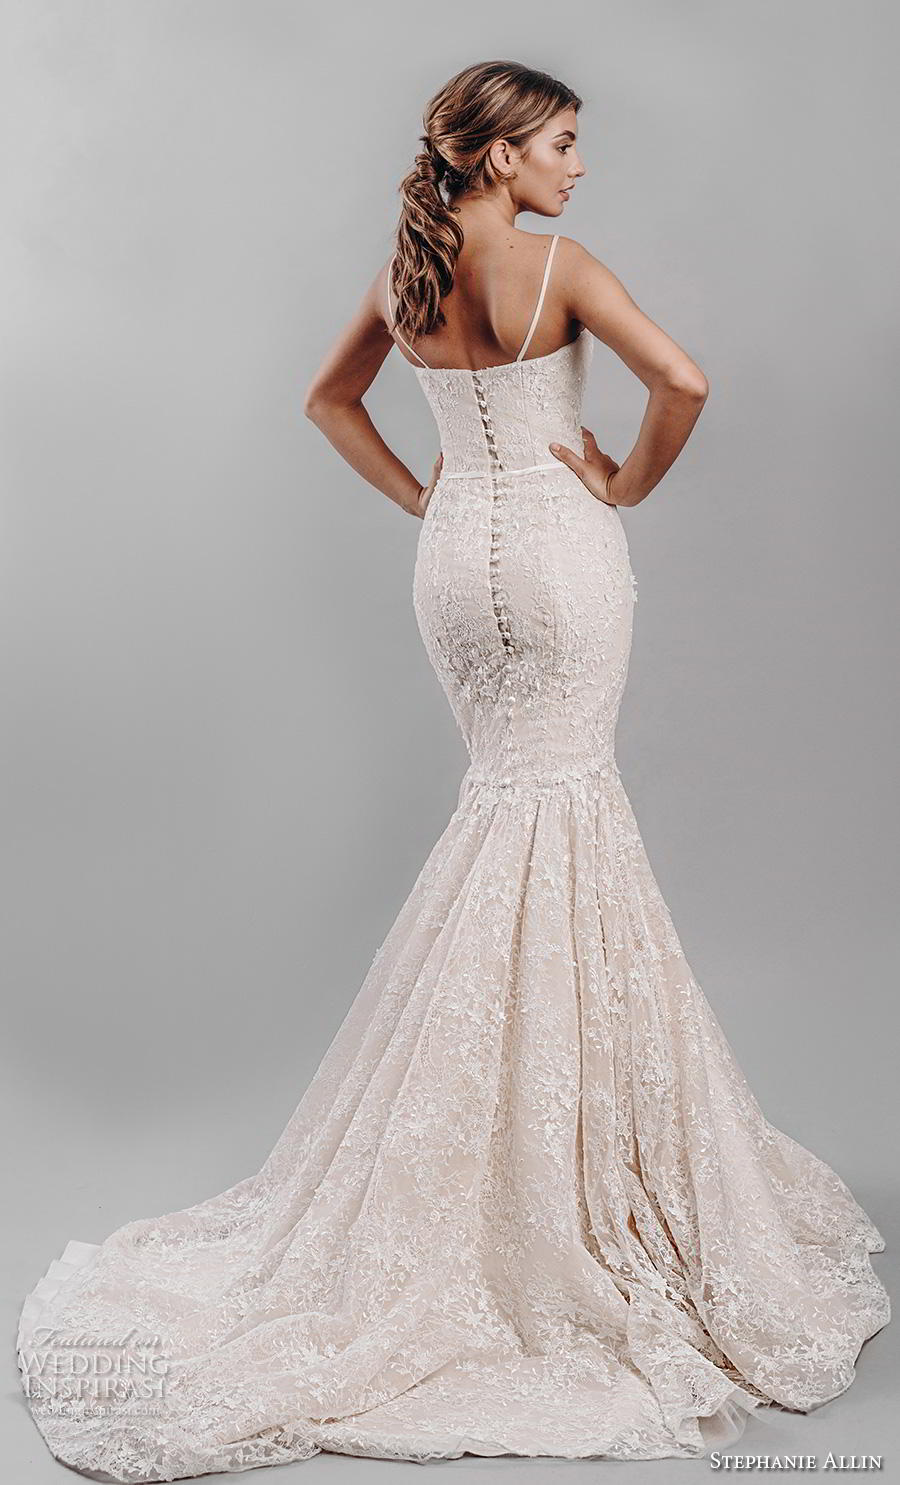 stephanie allin 2019 bridal sleeveless spaghetti strap sweetheart neckline full embellishment bustier sexy elegant blush mermaid wedding dress mid back chapel train (7) bv